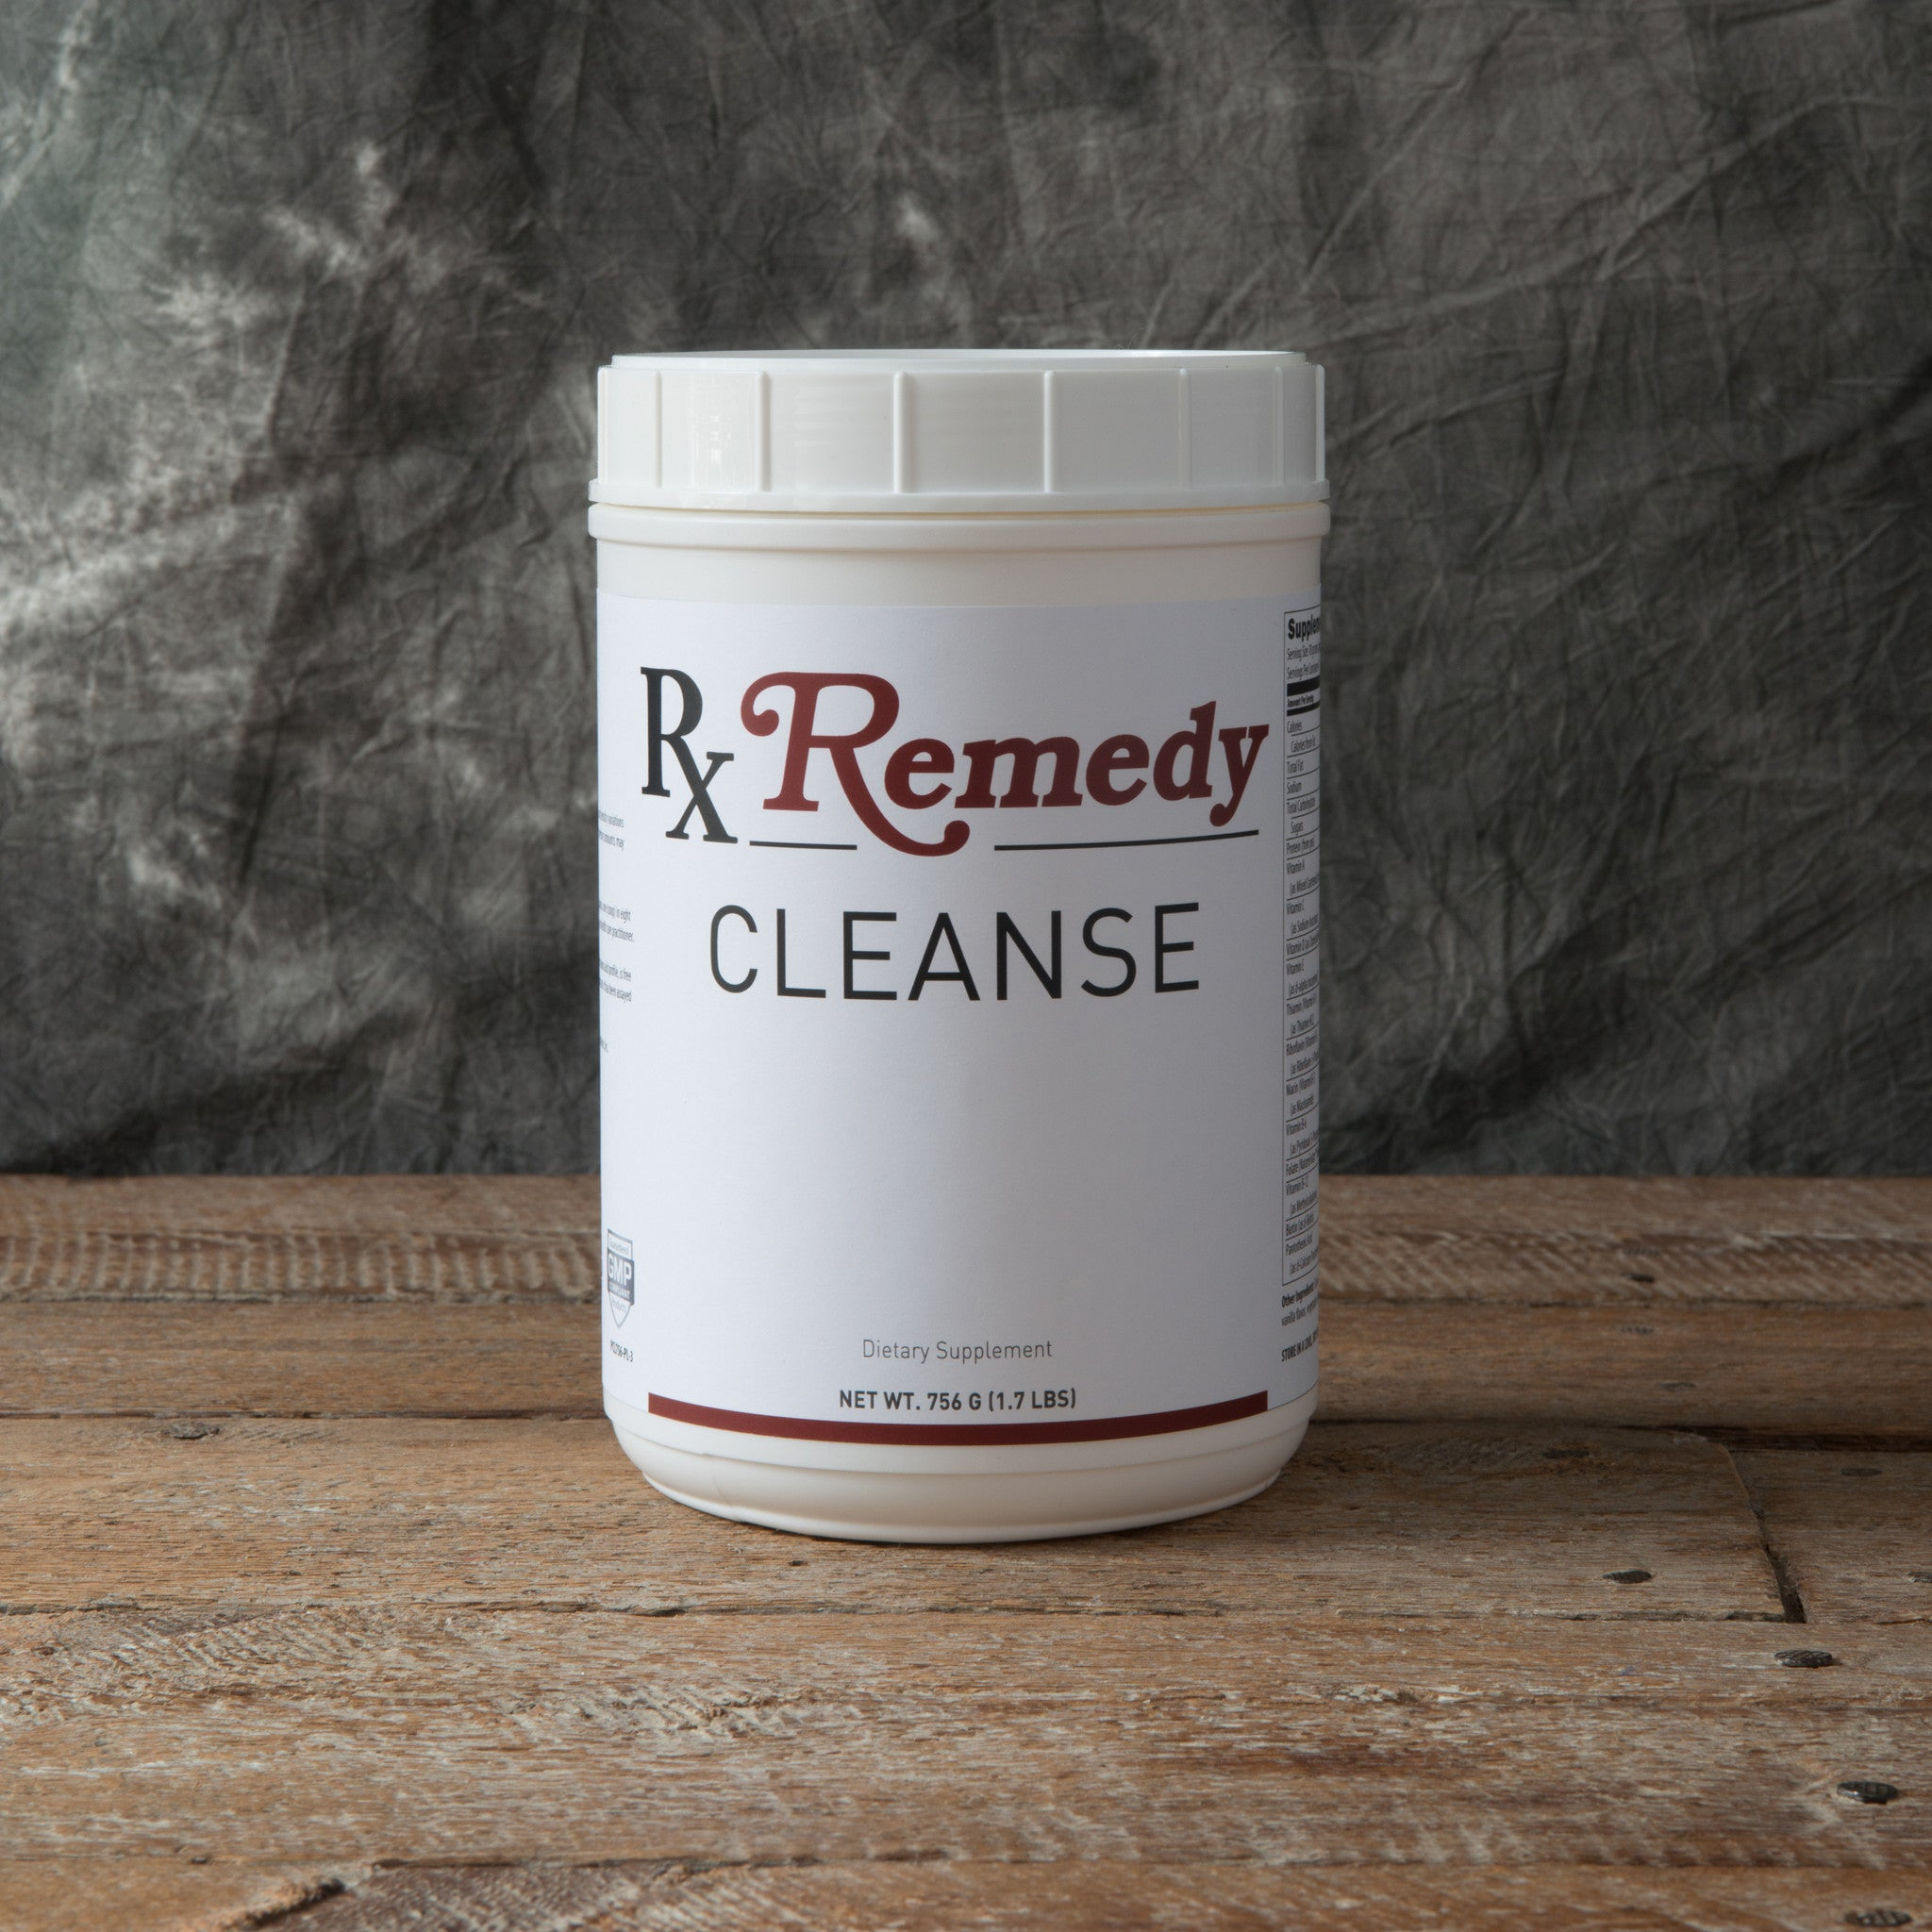 RxStar Remedy CLEANSE